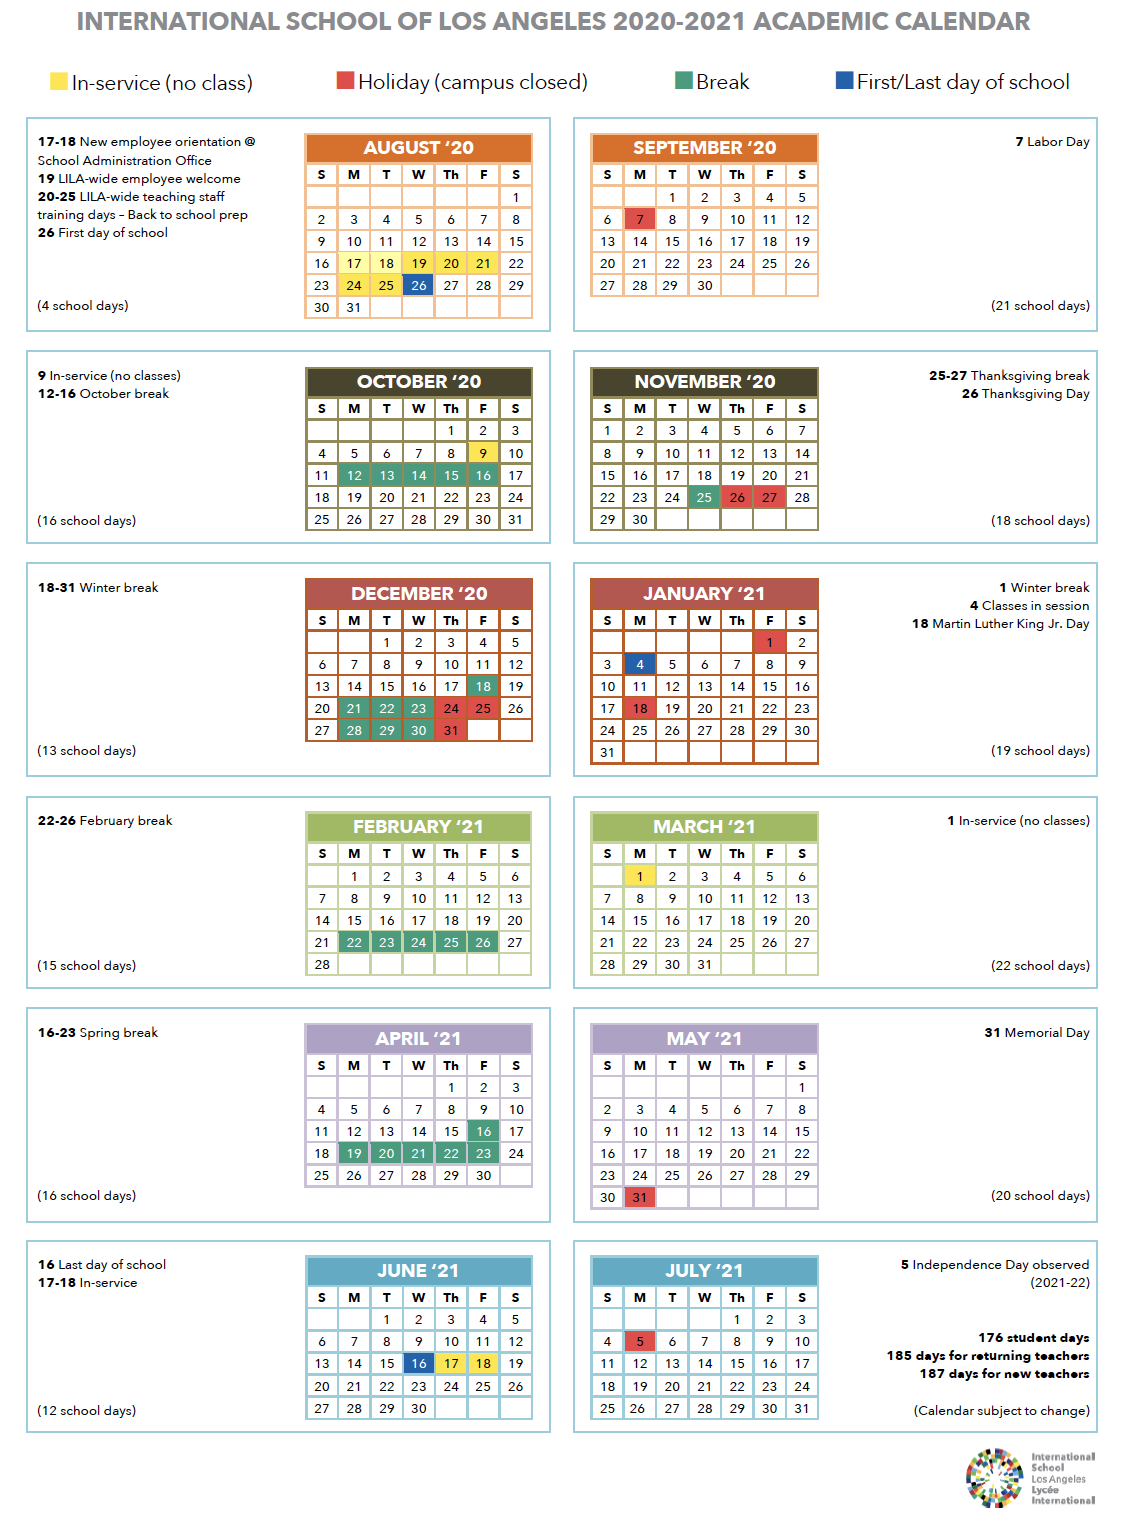 Calendar | International School Of Los Angeles With University Of Southern California School Calendar 2021 2020